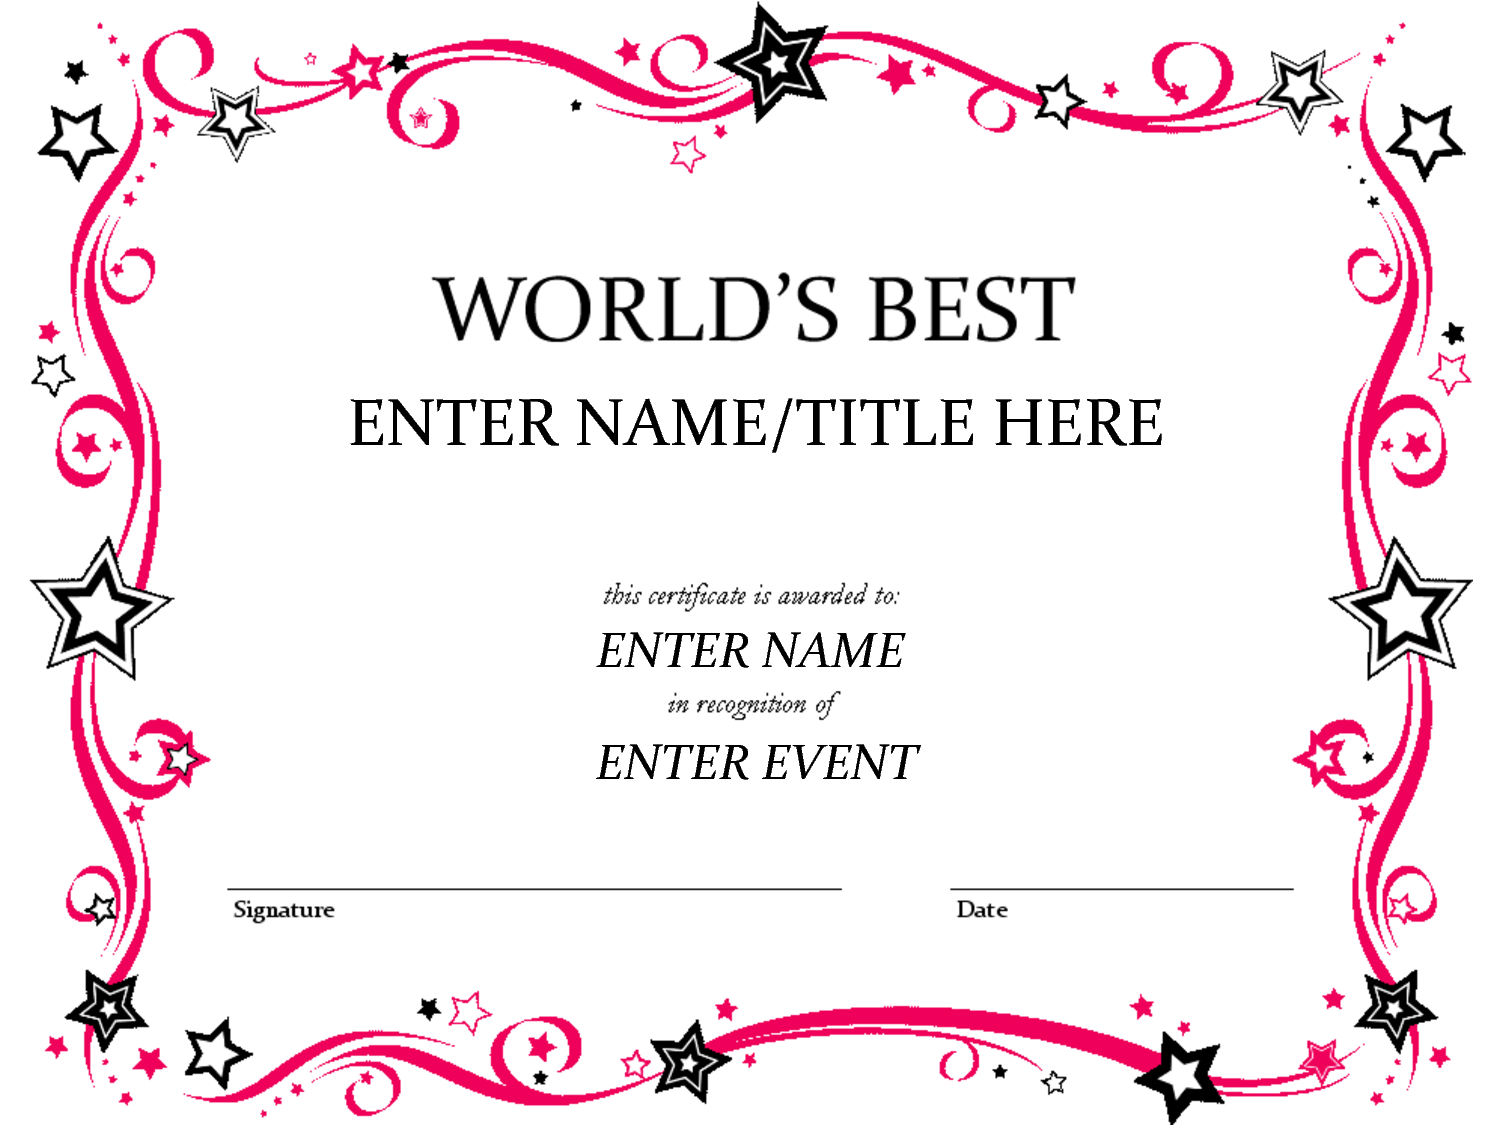 Free Funny Award Certificates Templates  Worlds Best Custom Award Inside Free Funny Award Certificate Templates For Word